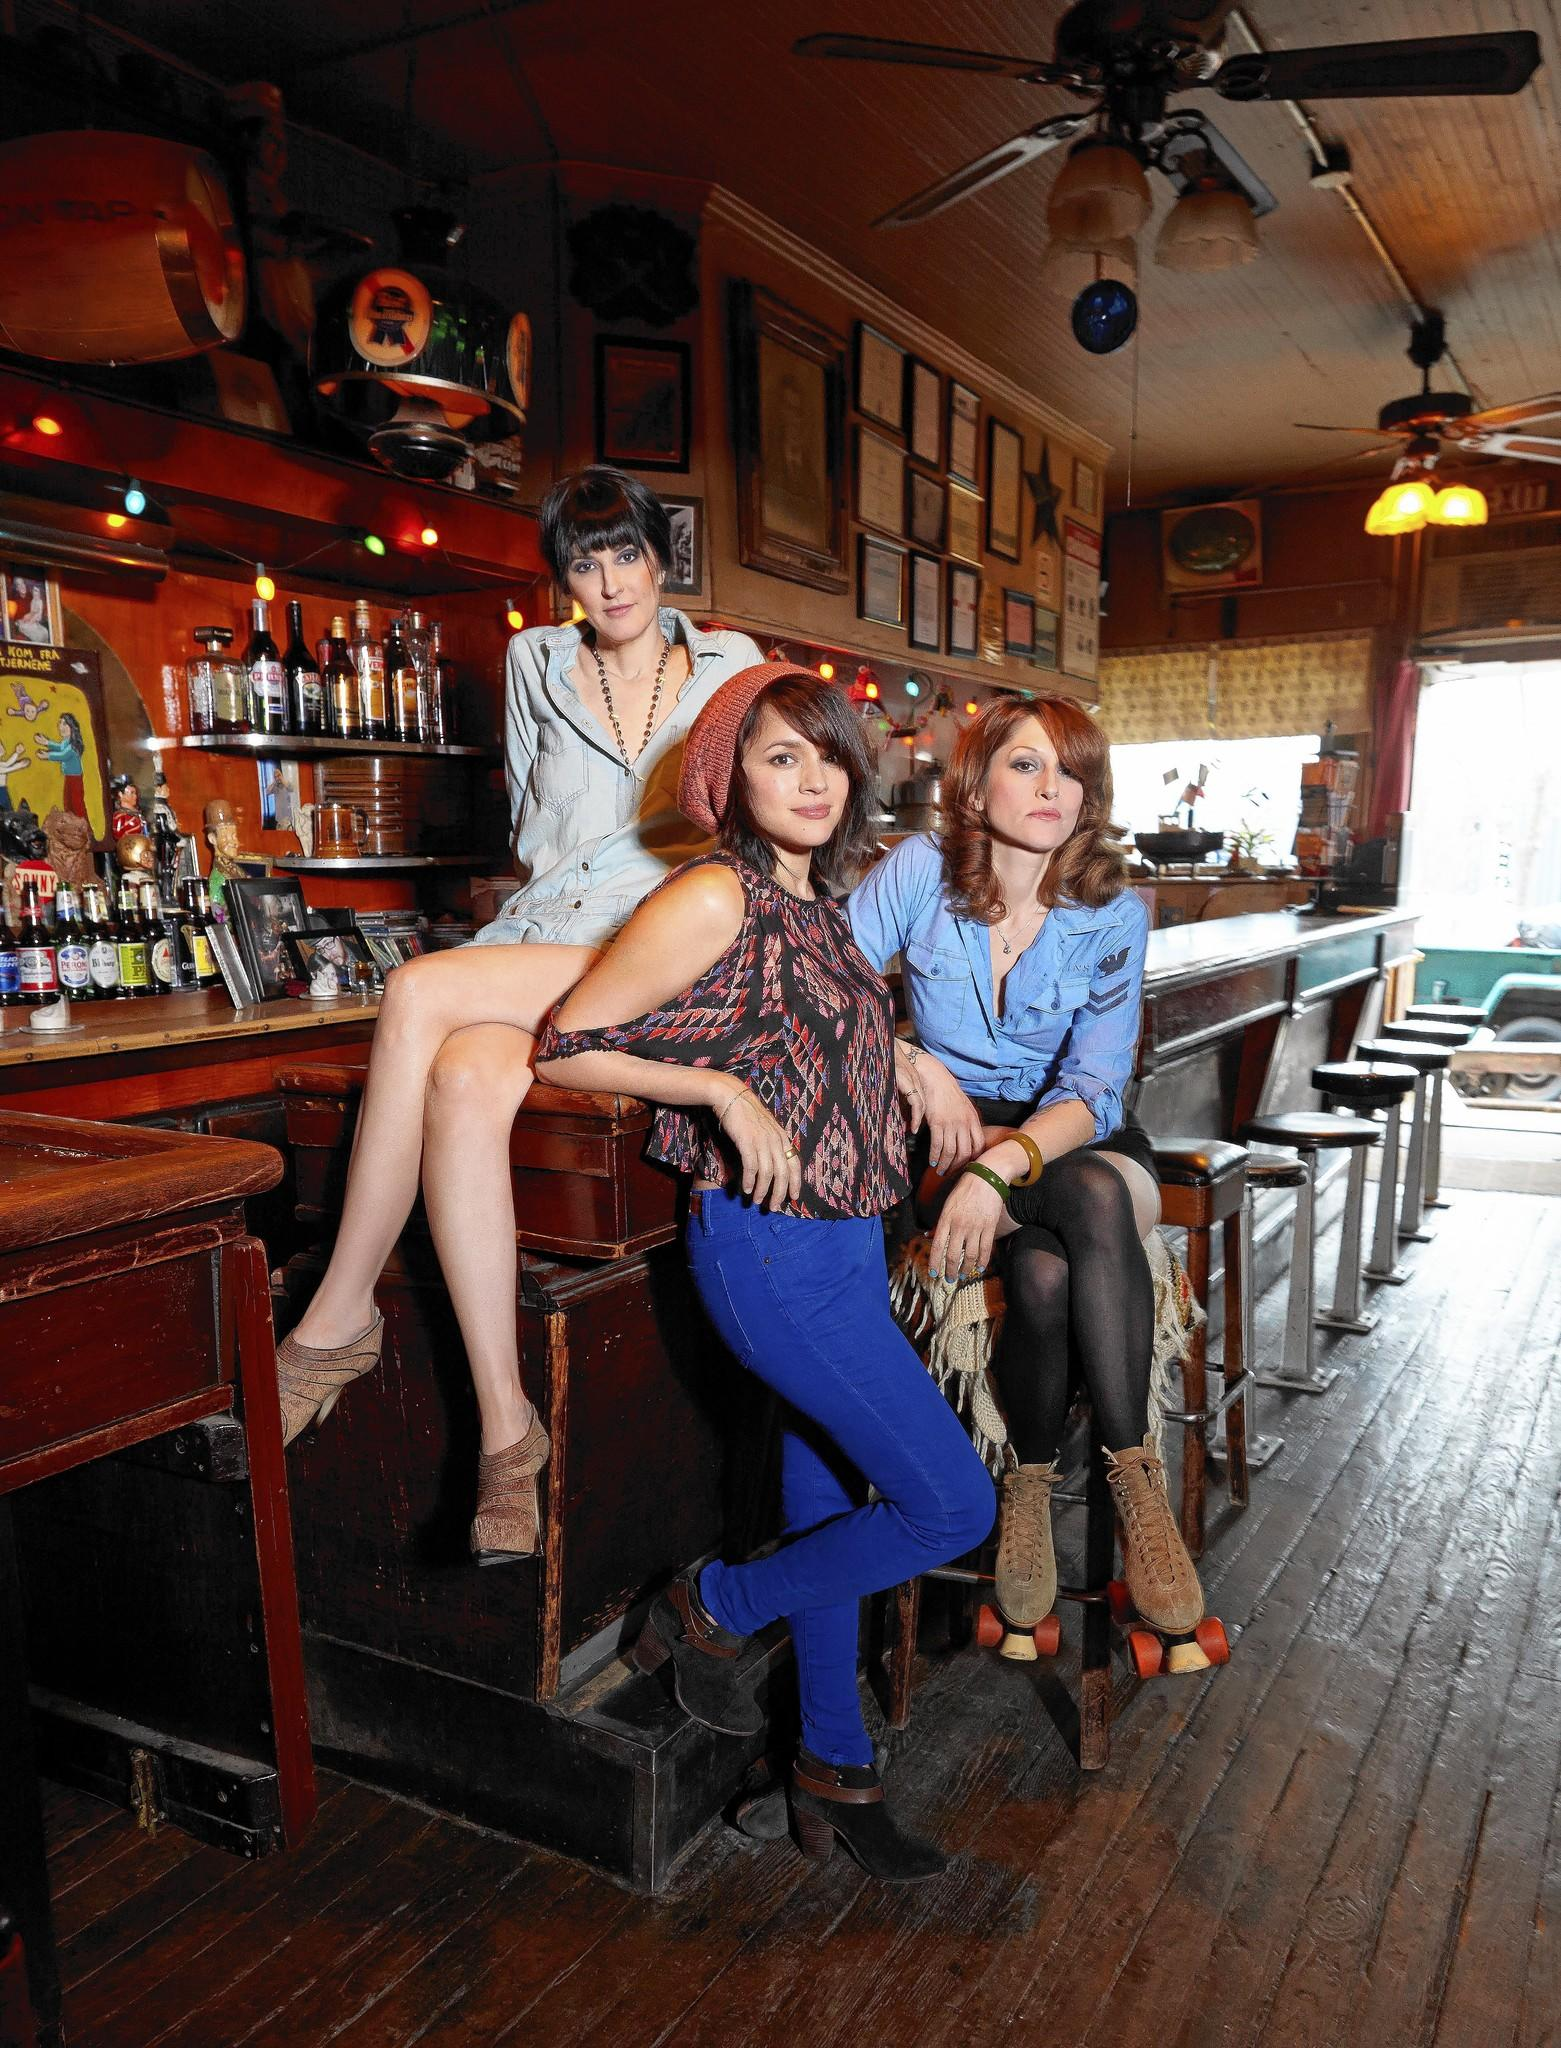 Puss N Boots performs in Hamden on July 22-23.